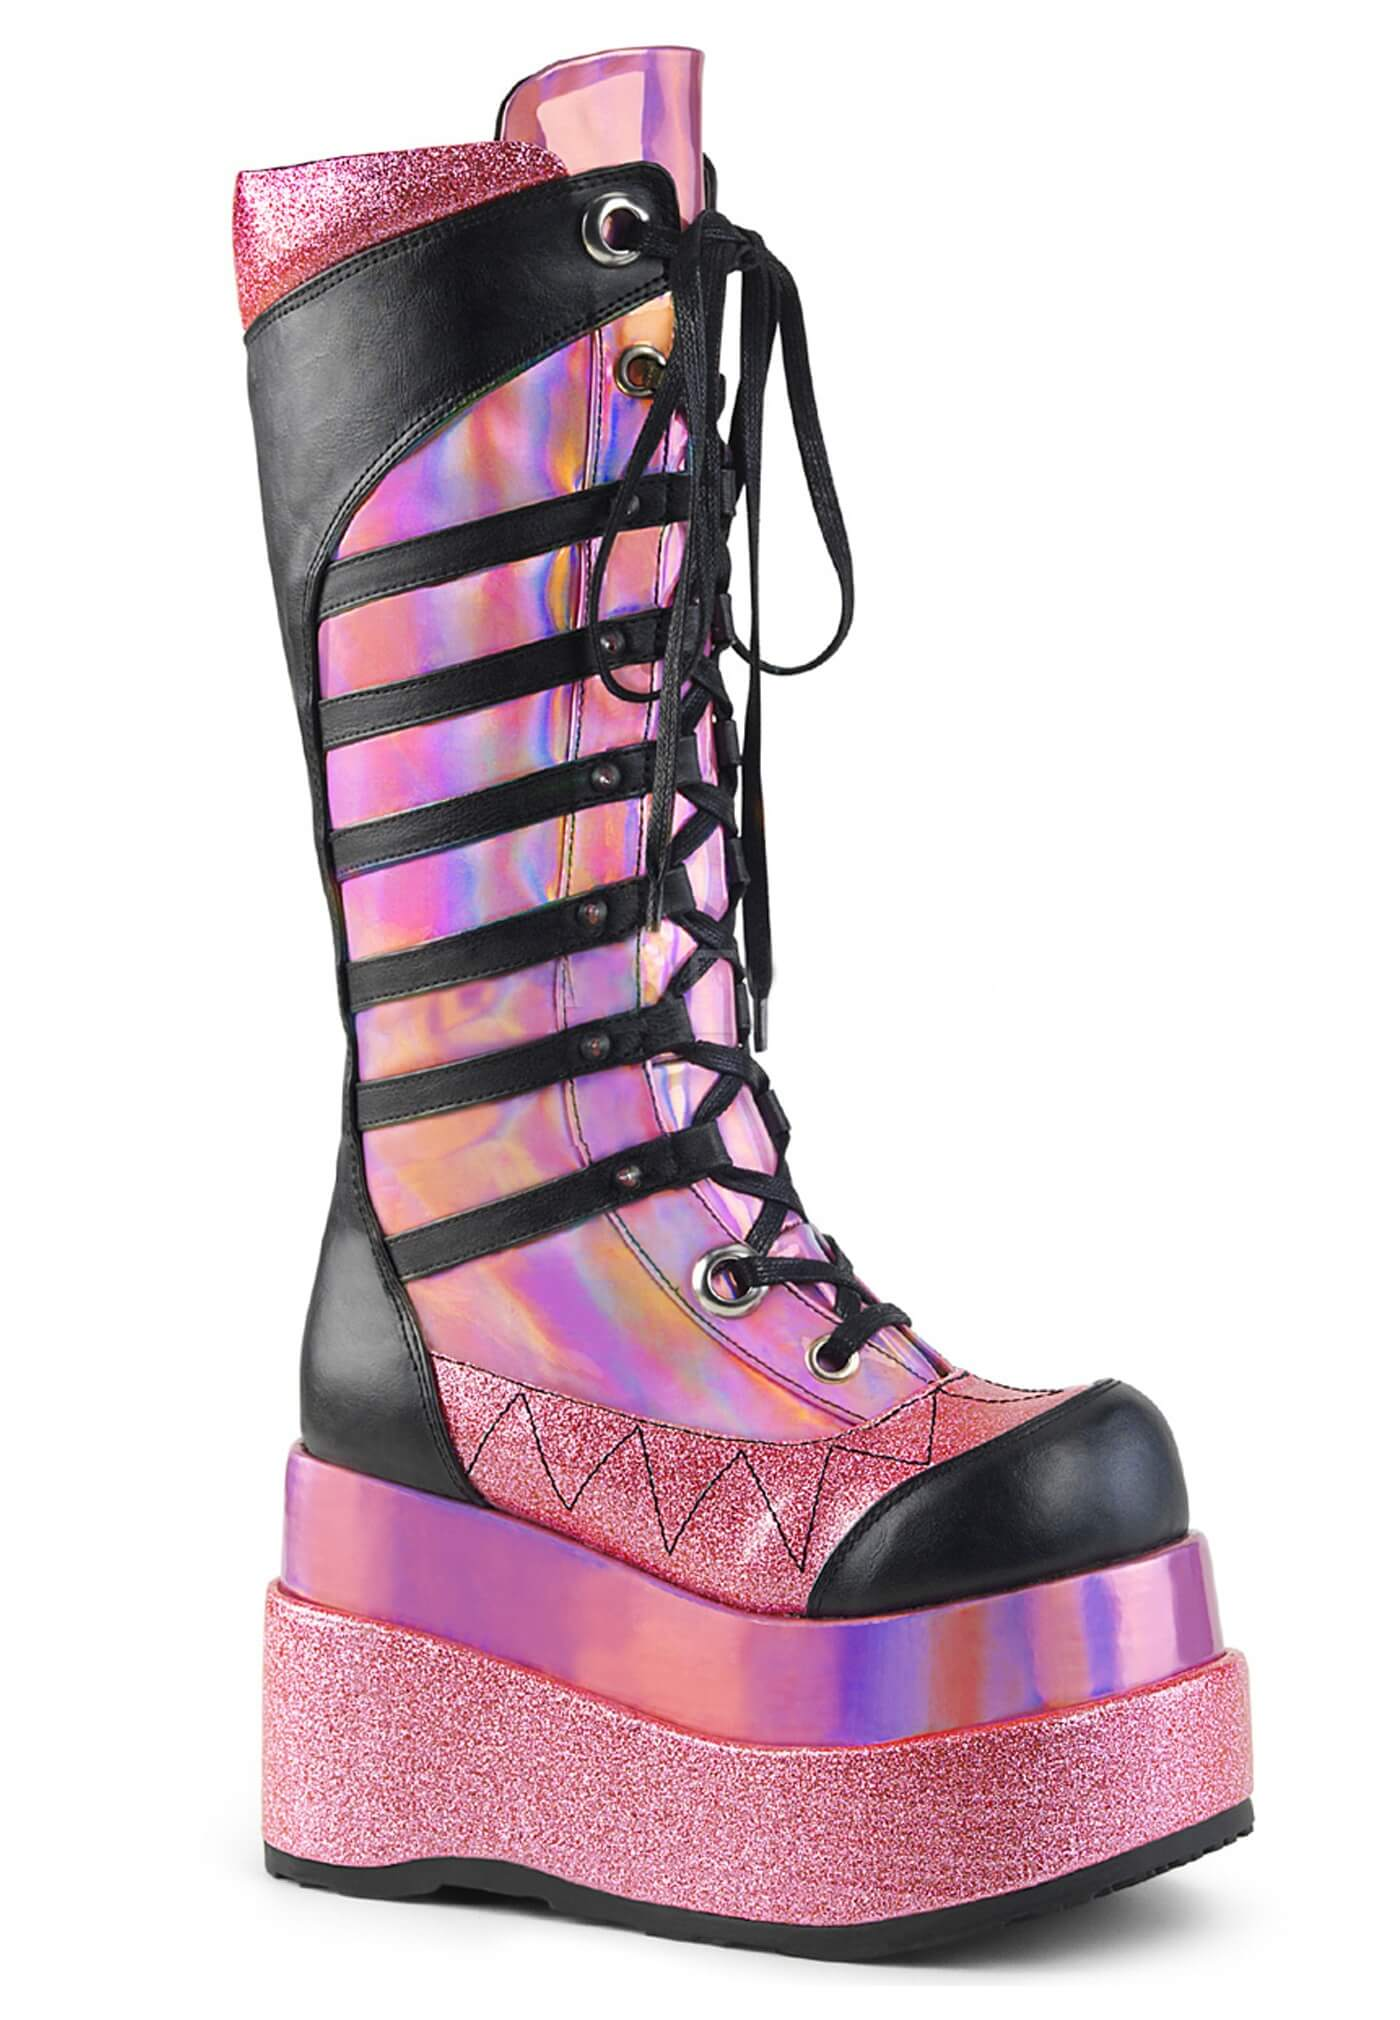 Demonia Pink Hologram Bear Boots Metallic Holographic Cyber Goth And Festival Shoes